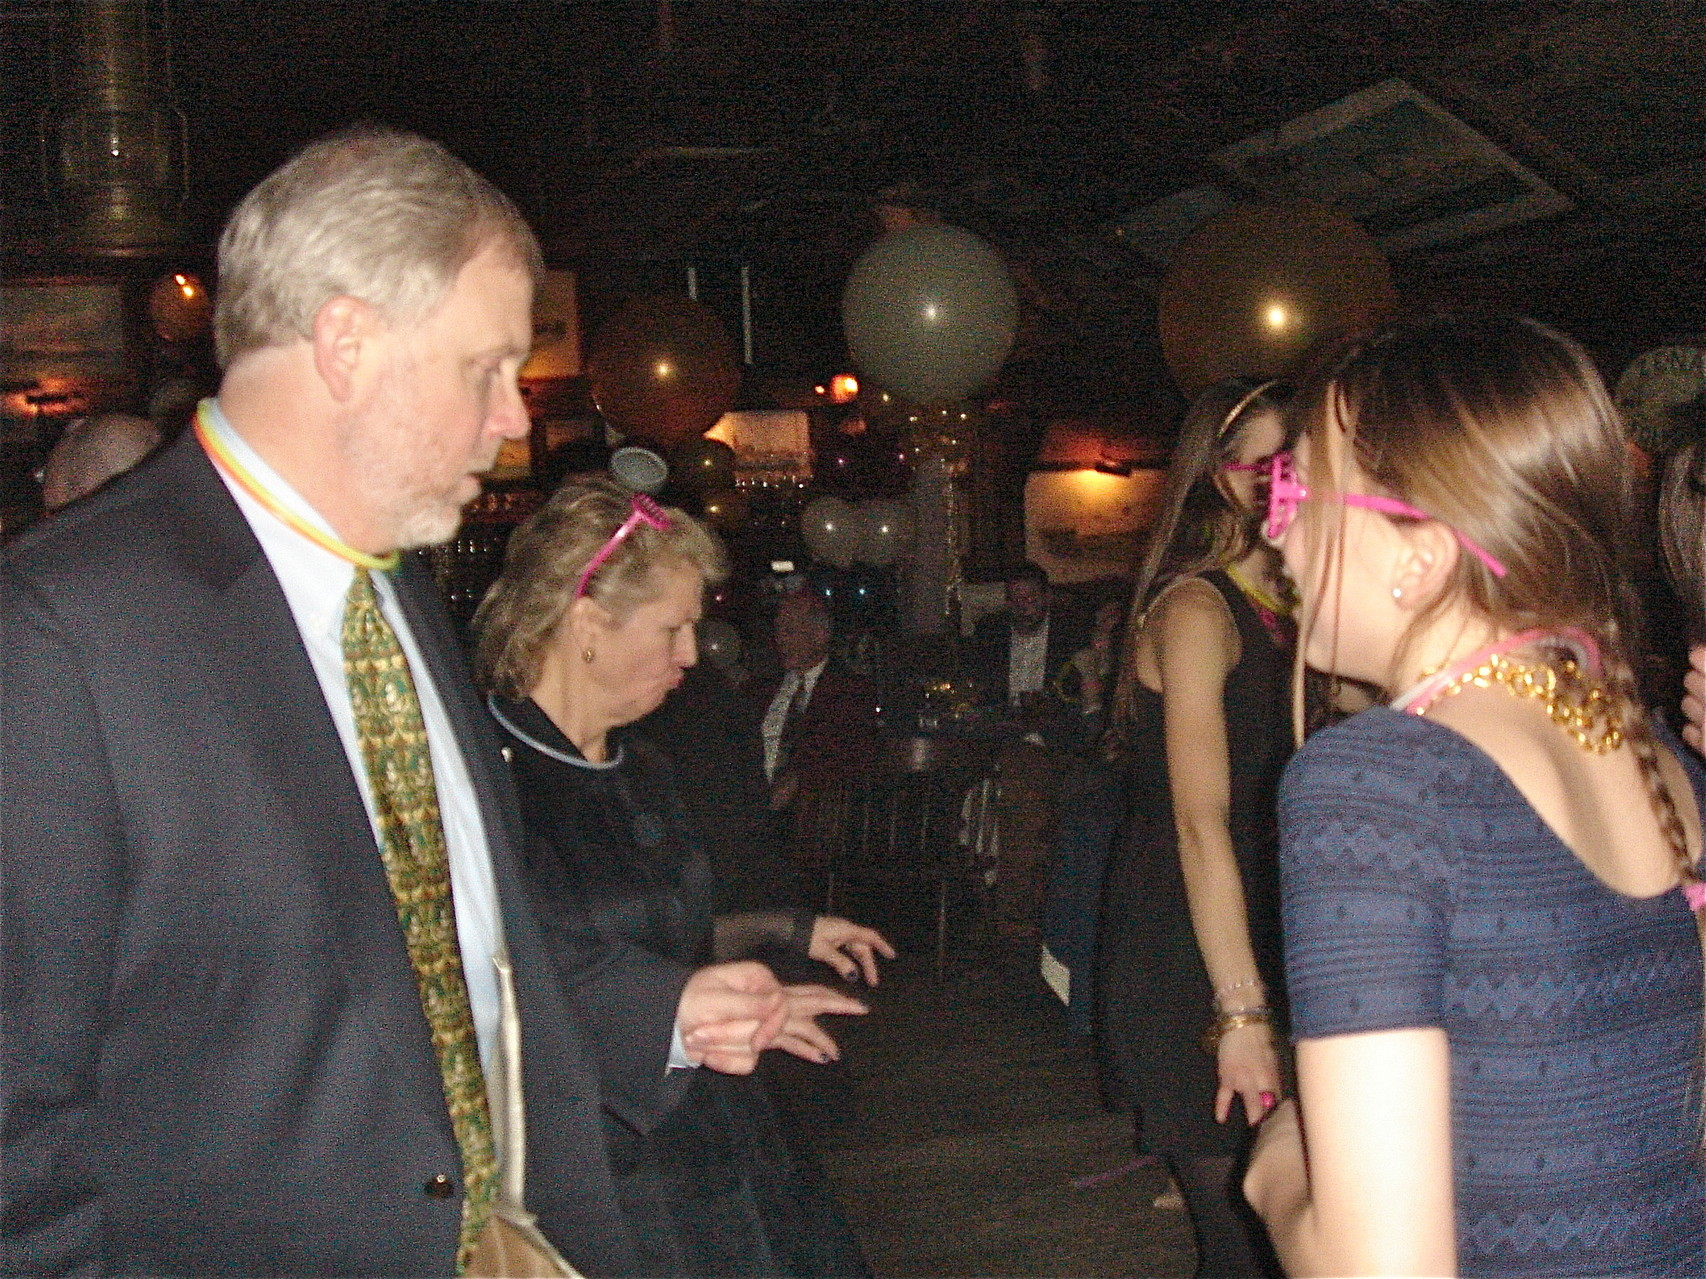 Stuart Jr. & daughter Gabby hit the dance floor.